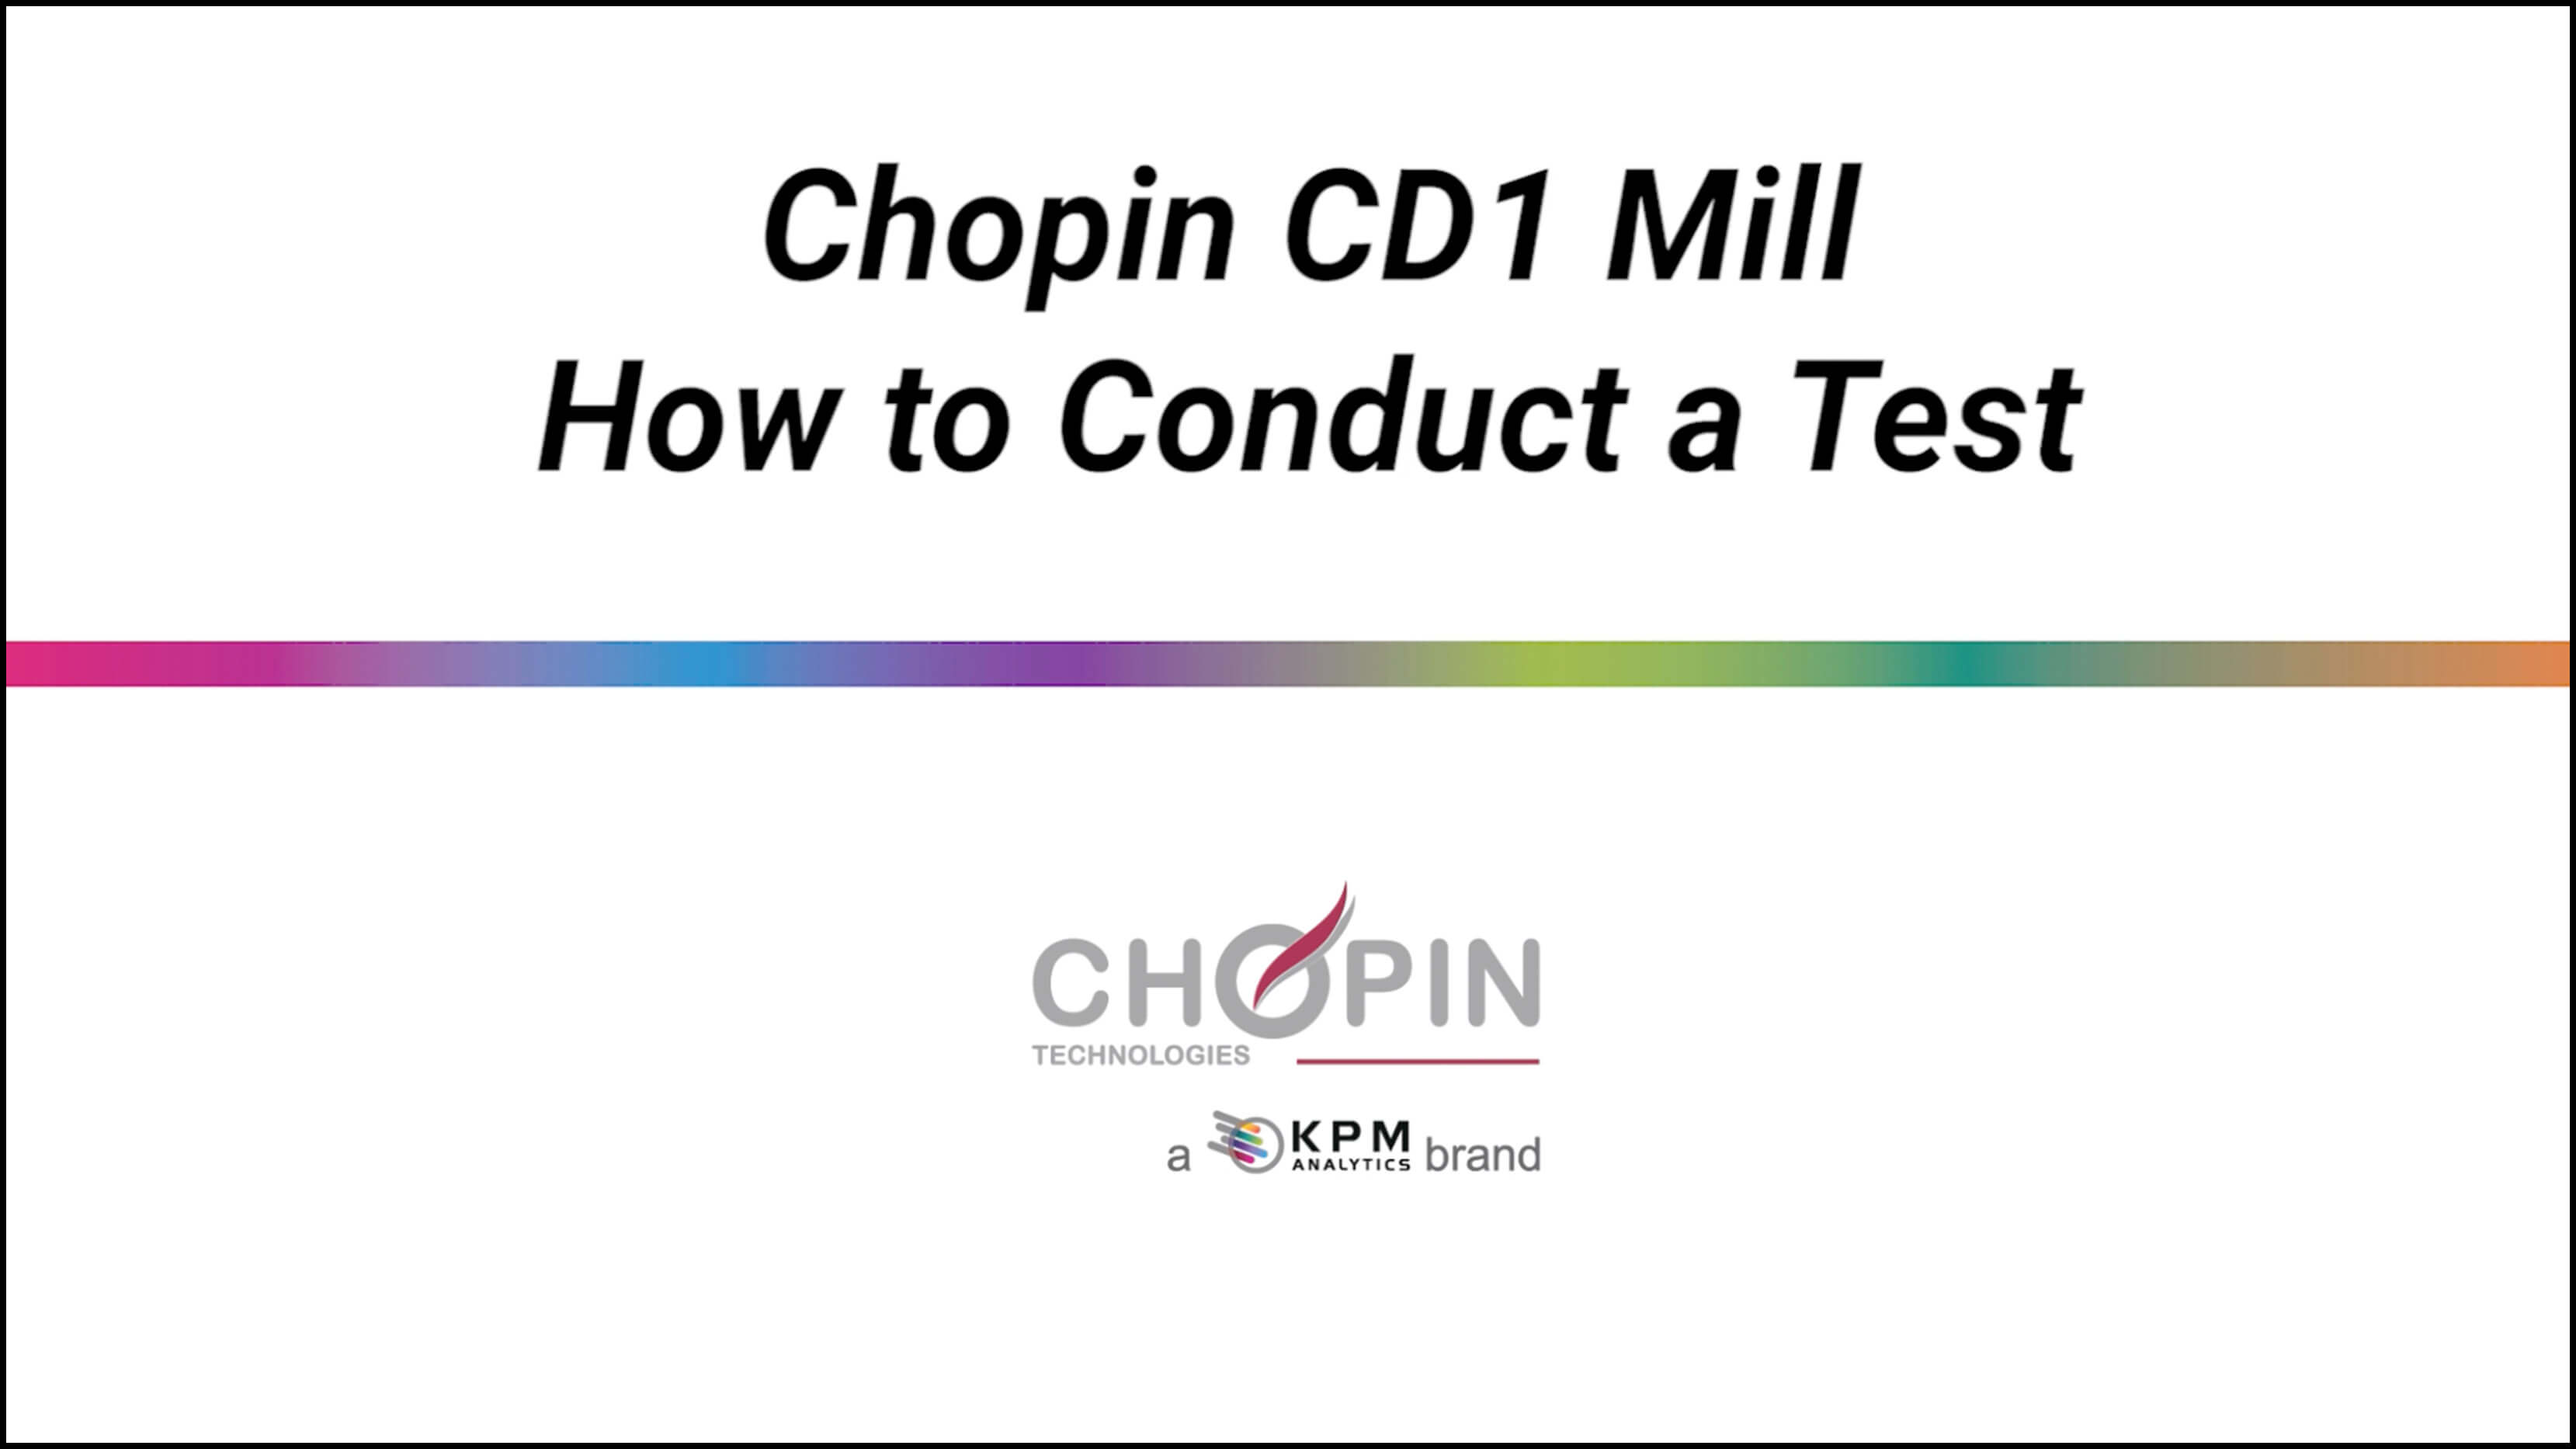 CHOPIN CD1 Mill - How to Conduct a Test